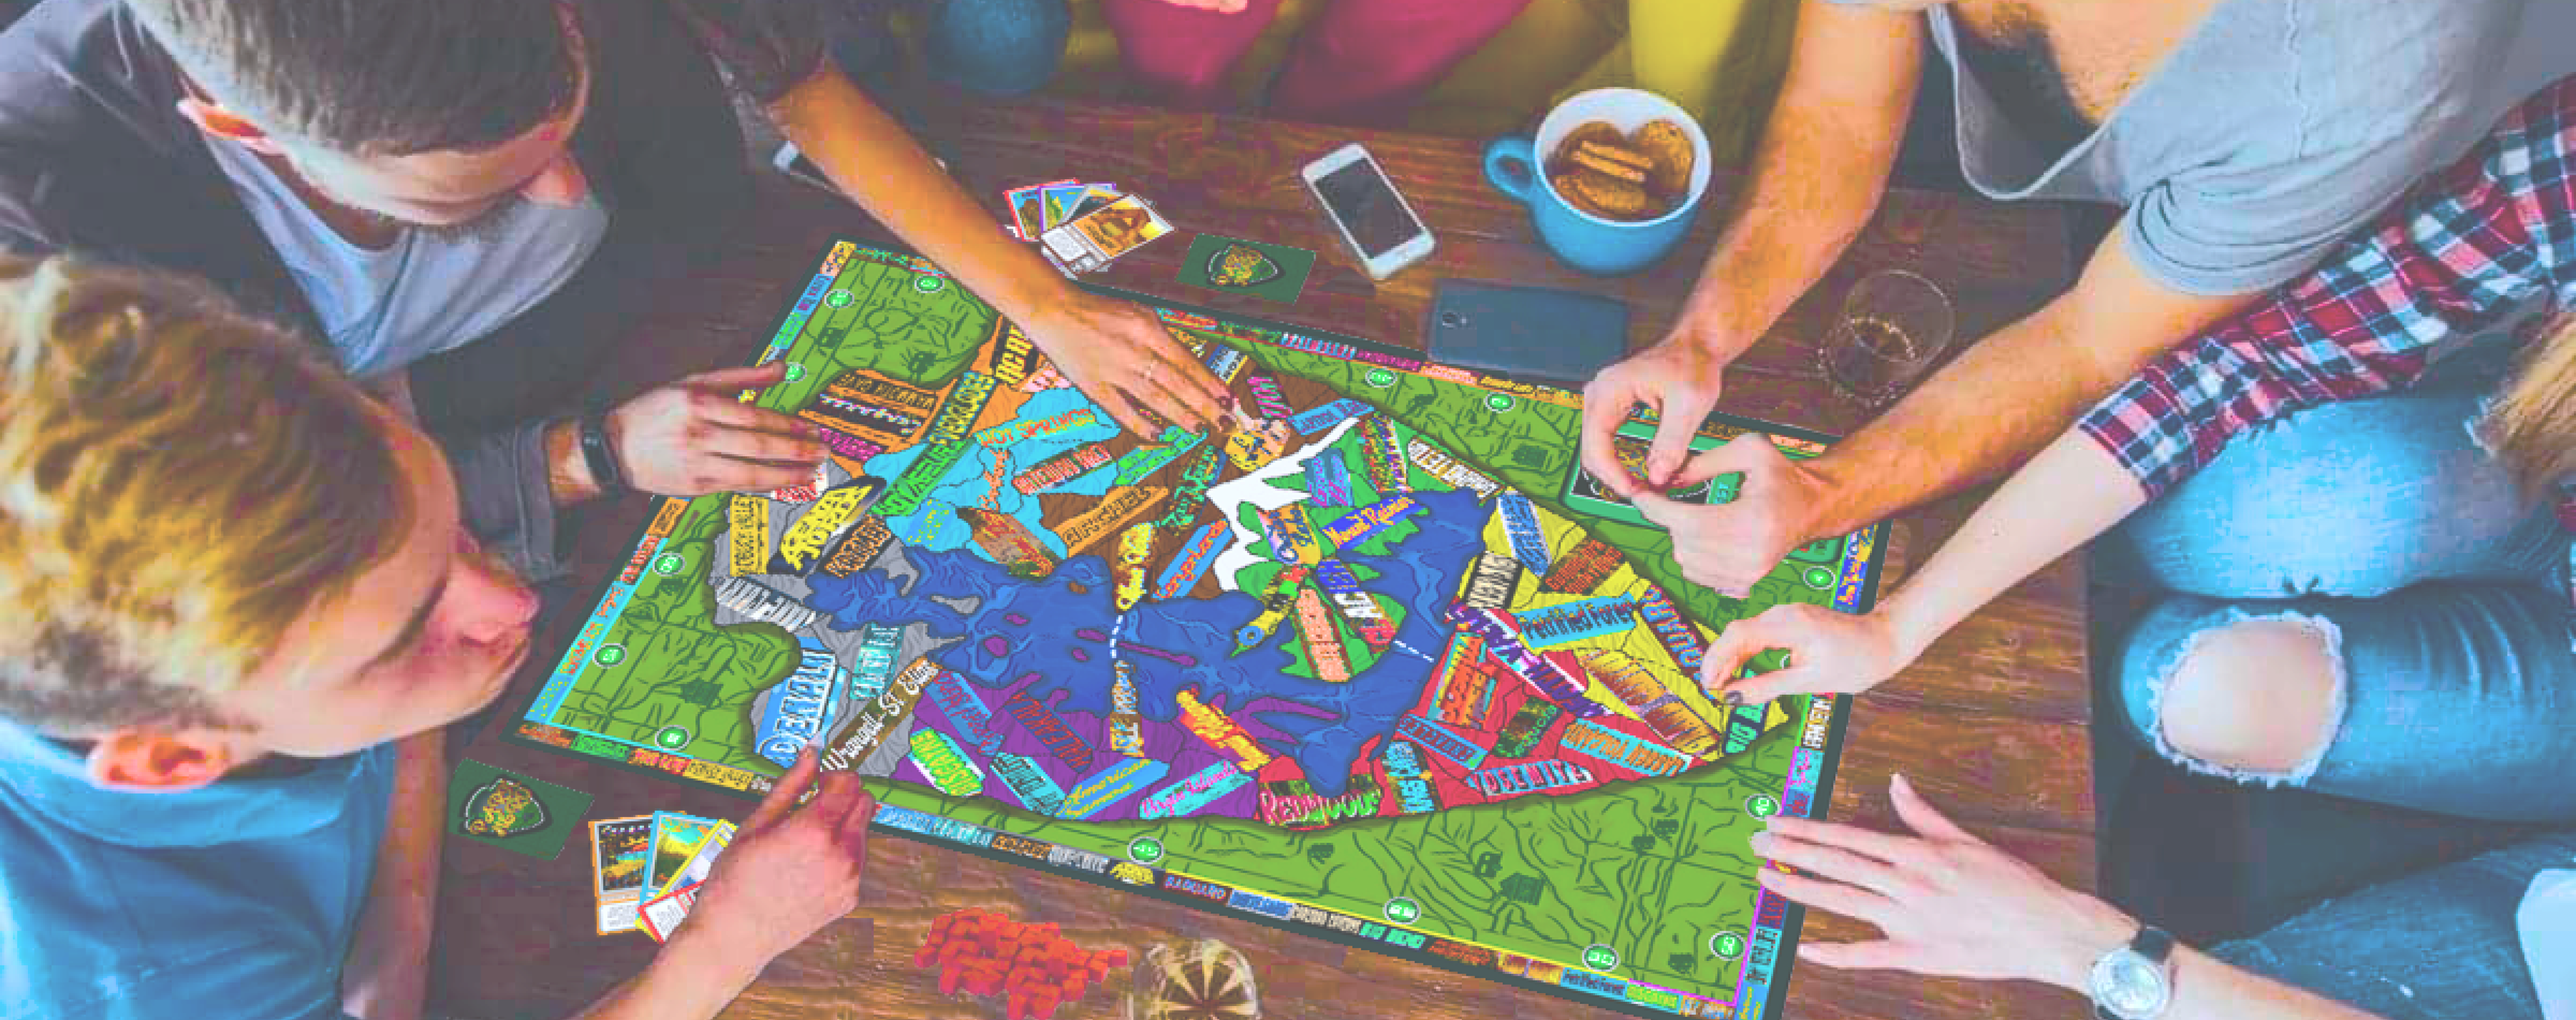 picture of the board game